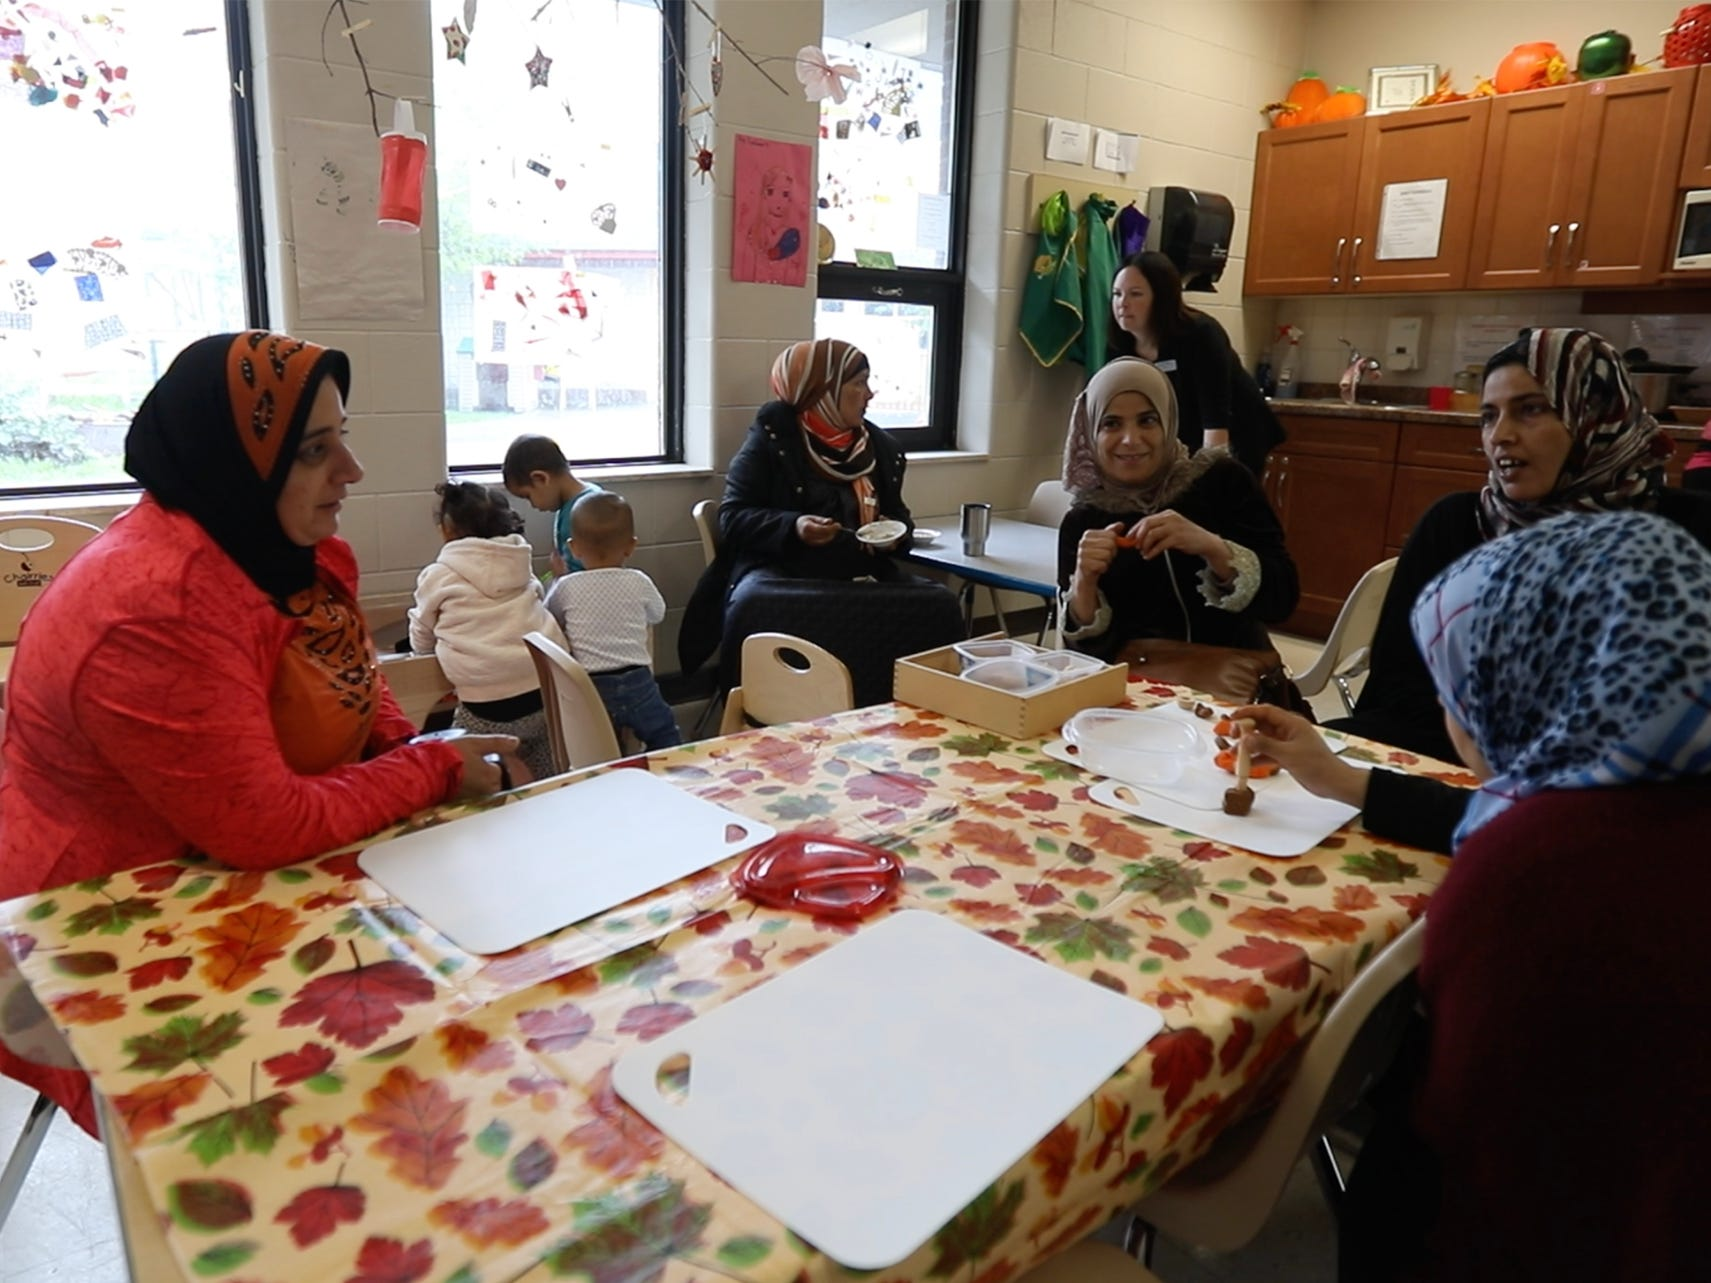 A group of mothers sit around a children's table playing with dough chatting while their children wander back and forth from the table. Ontario, Canada's Ministry of Education believes in promoting early learning and literacy.